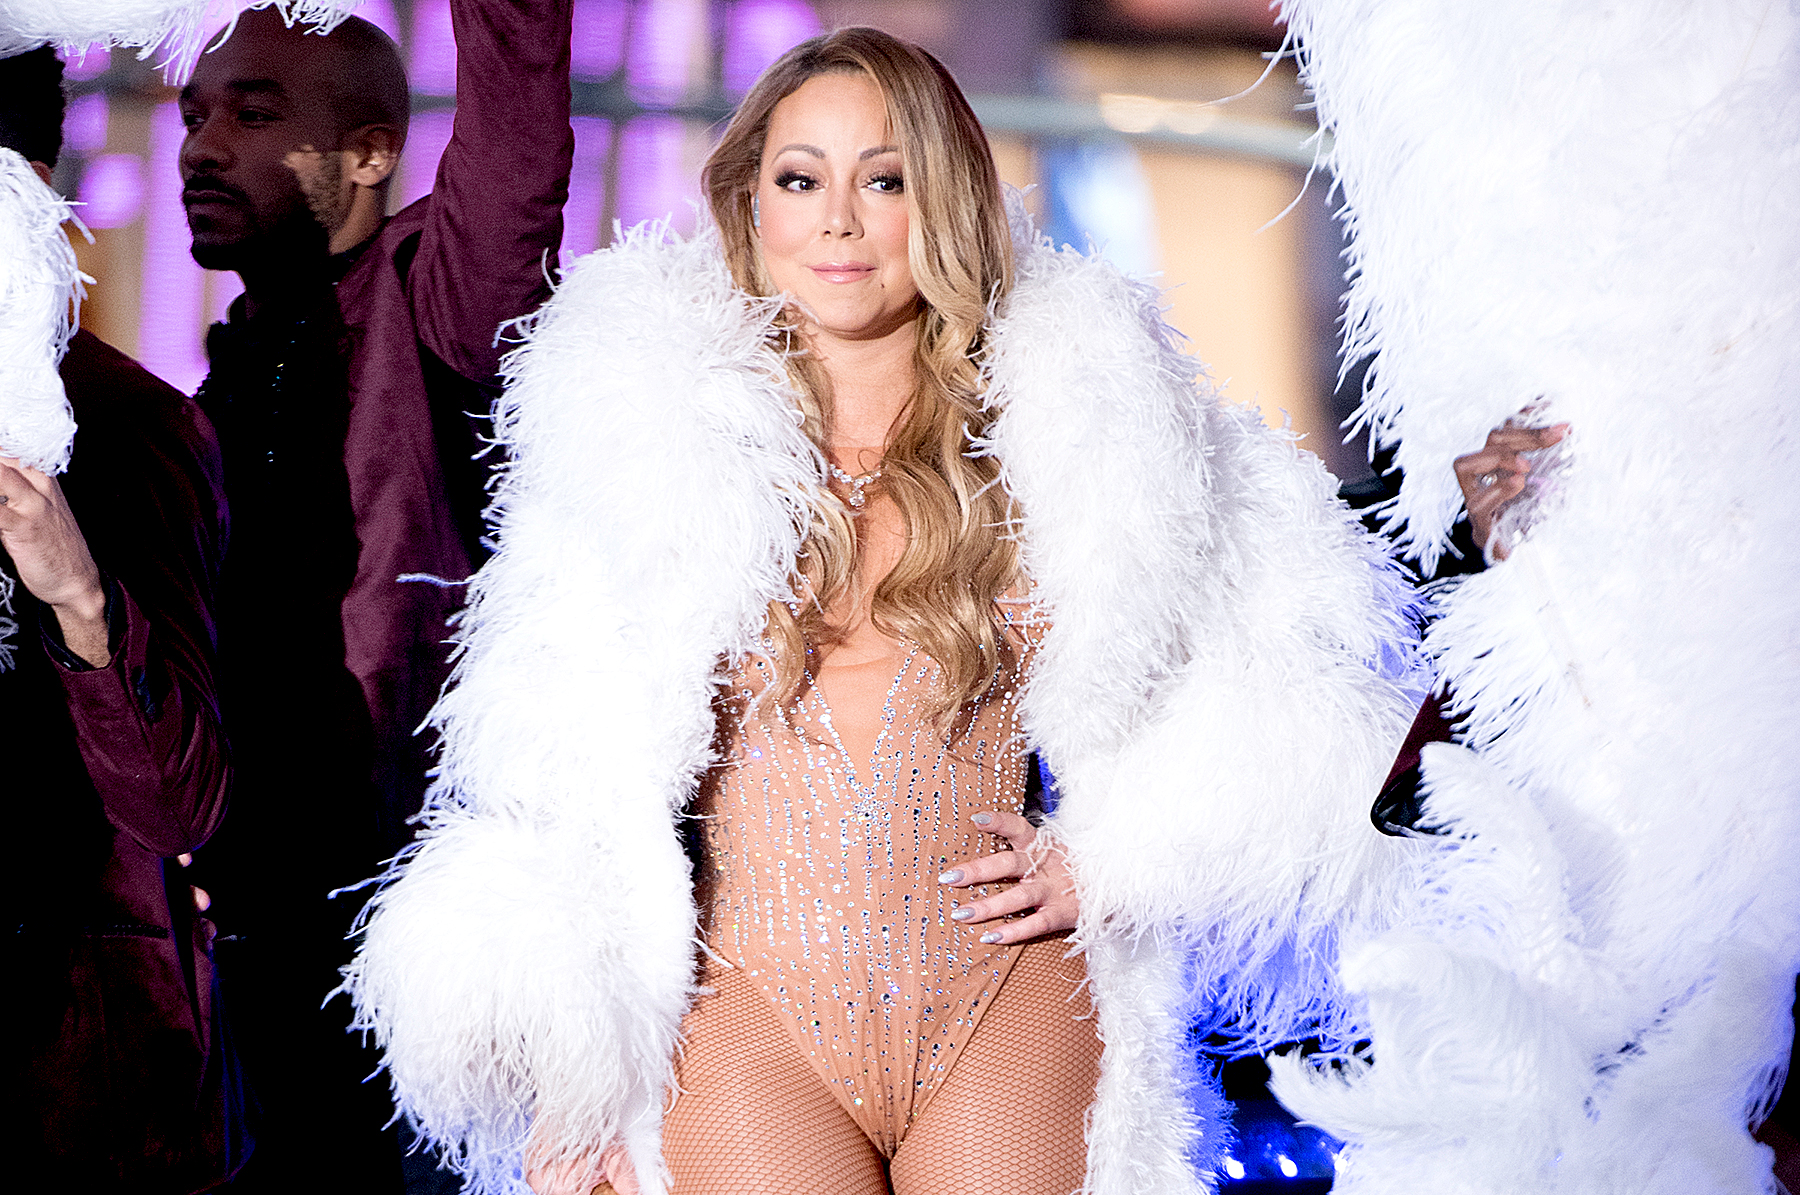 Mariah Carey performs during New Year's Eve 2017 in Times Square